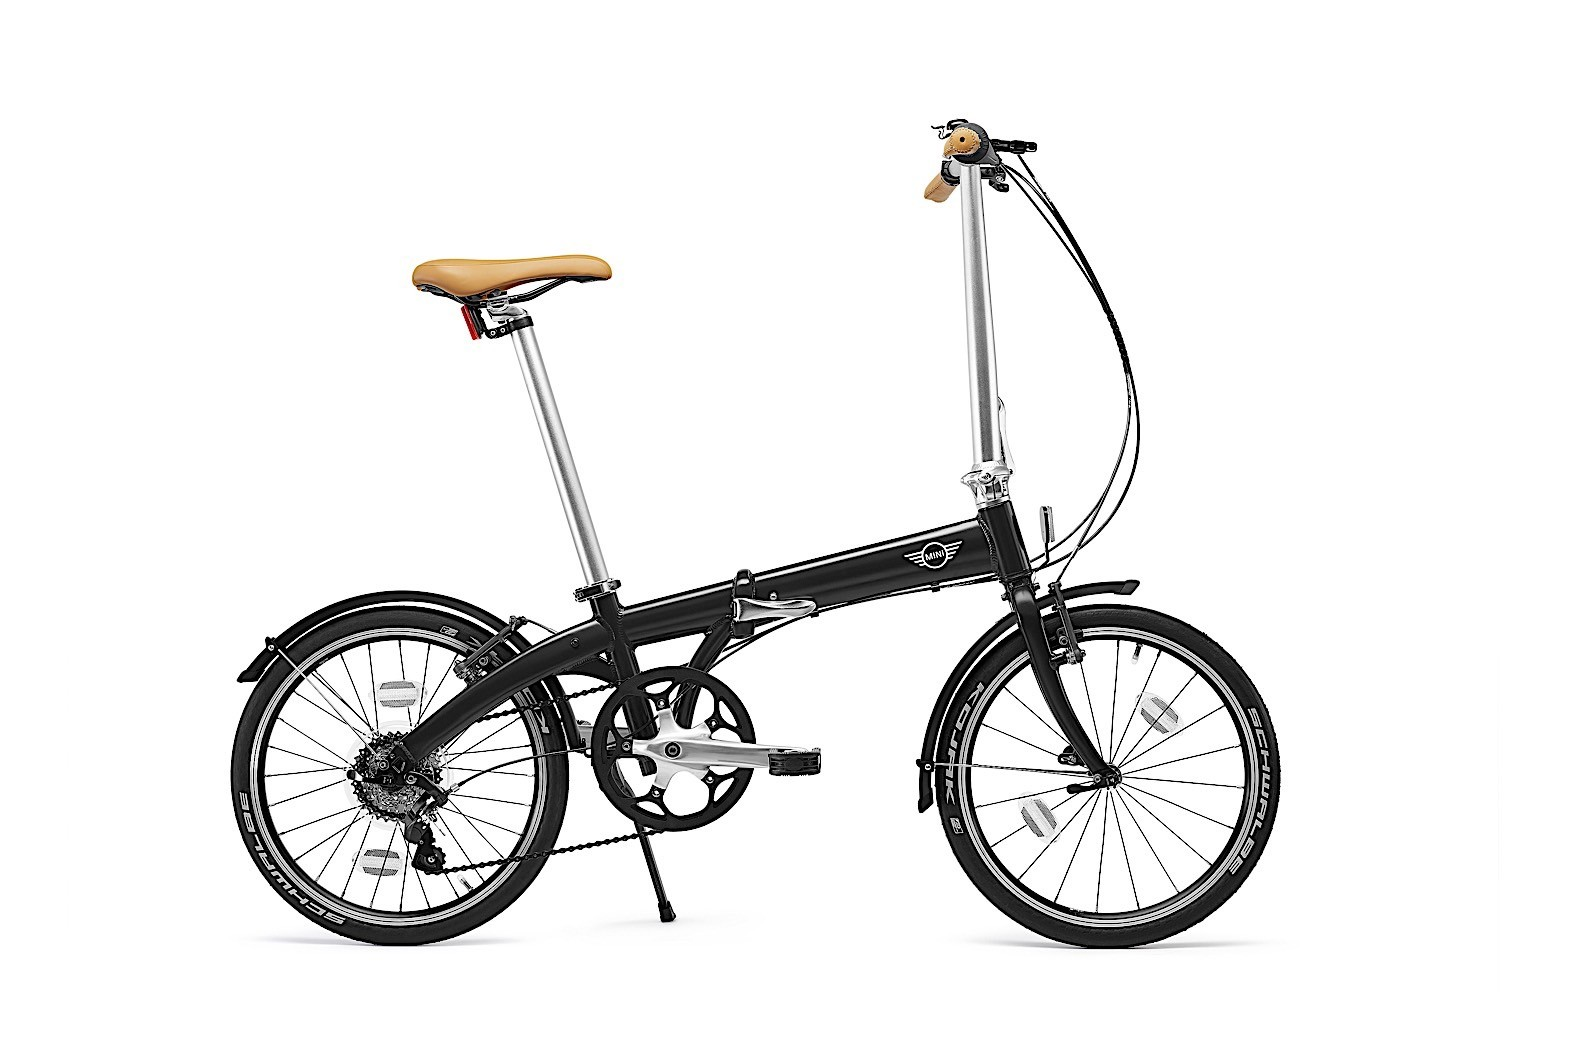 Mini Gets Ready For Sunny Days With New Folding Bike